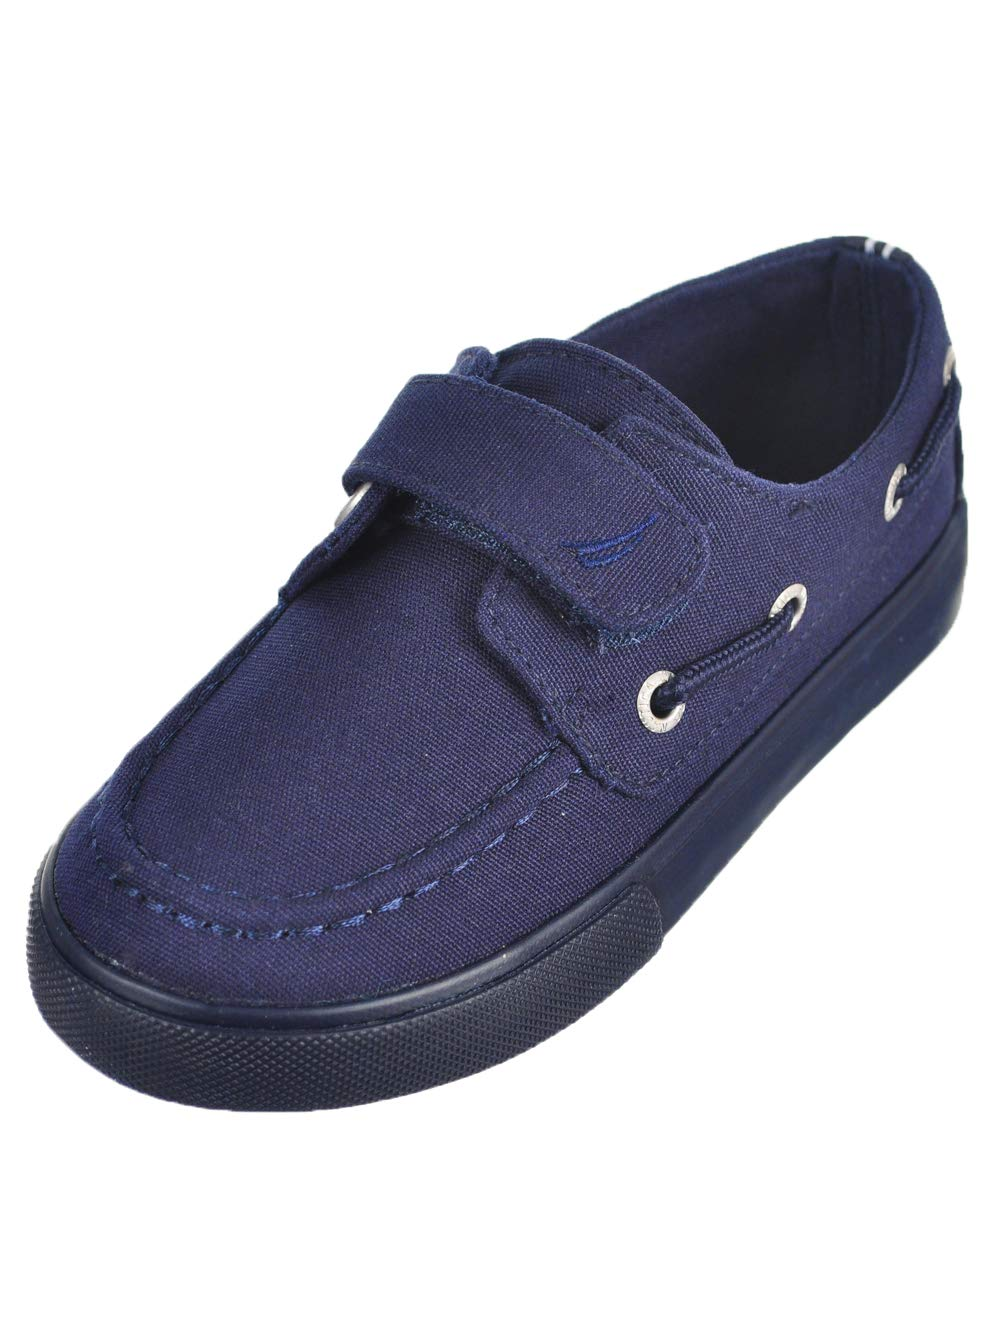 Nautica Boys' River 3 Boat Shoe, New Spore Navy Solid, 11 M US Little Kid